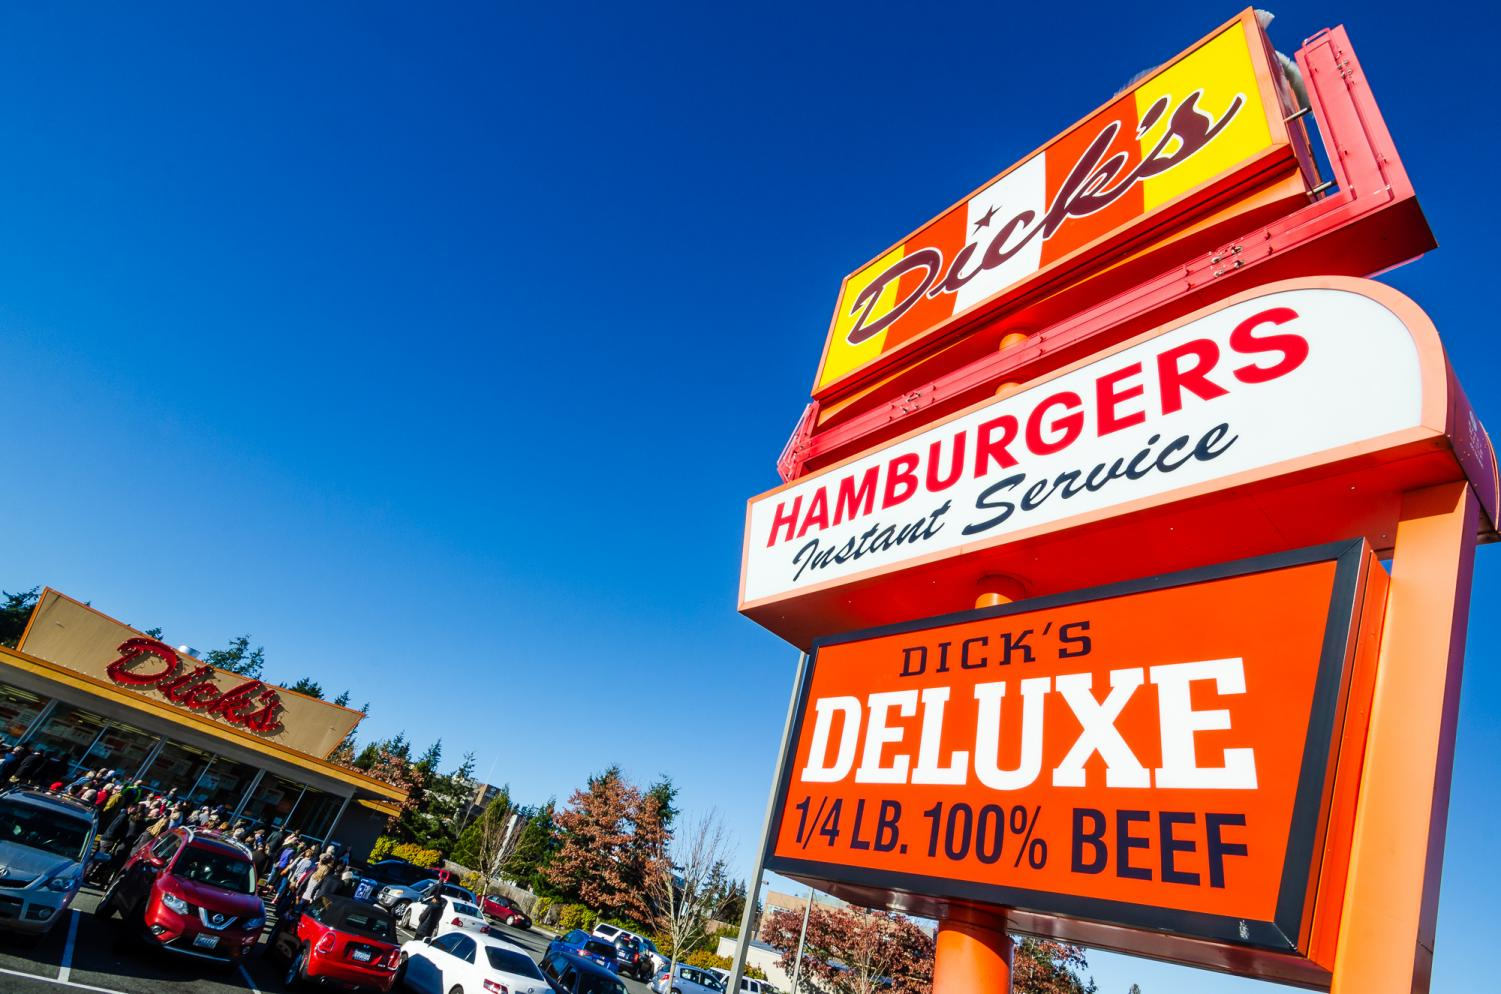 Dick's Drive-In celebrated it's 65 birthday on Tues. Jan. 29.